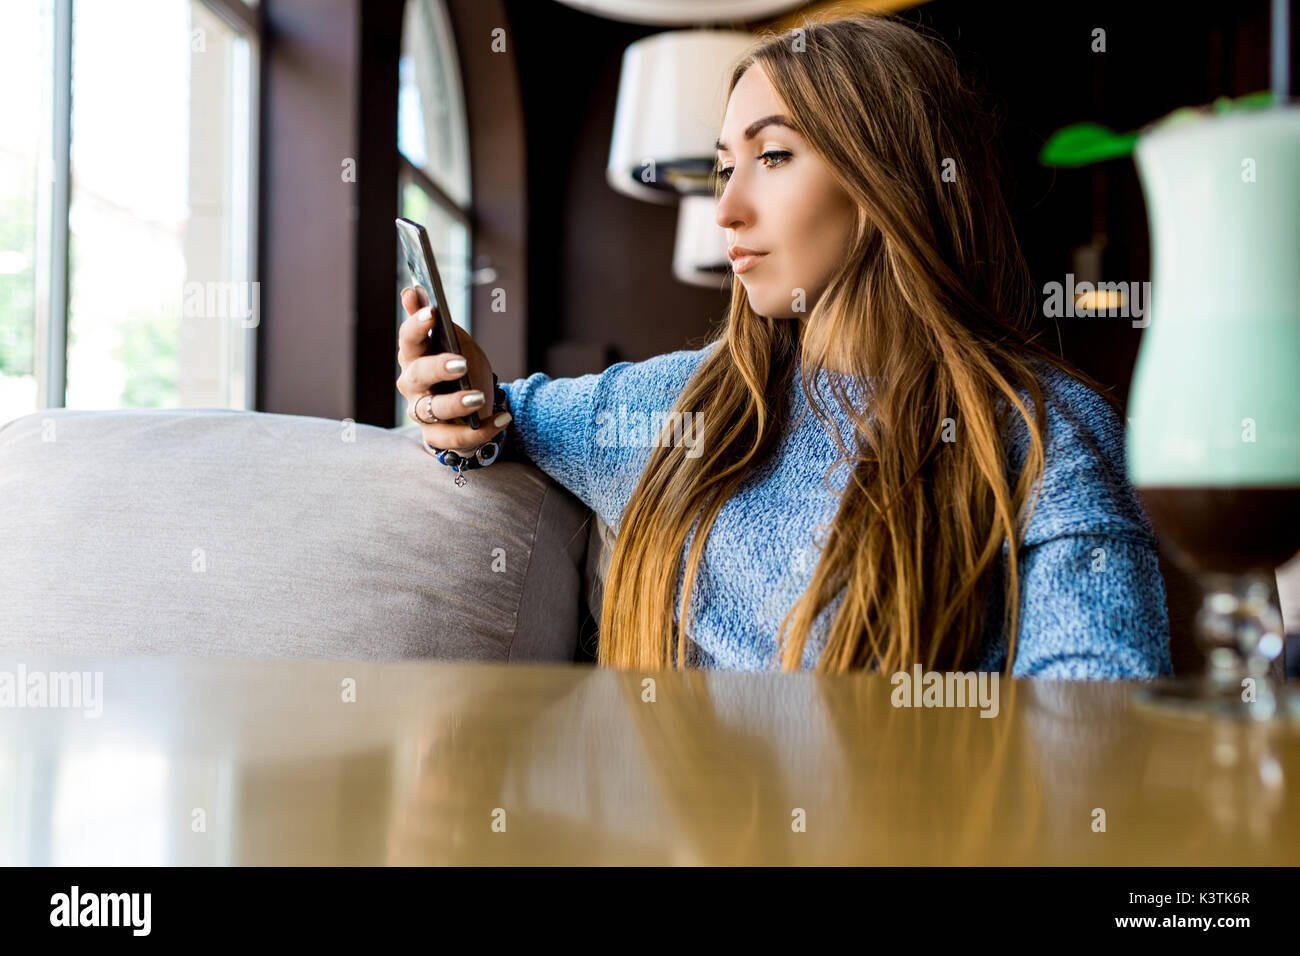 Portret of young female reading sms on the phone in cafe. Toned. Selective focus. - Stock Image